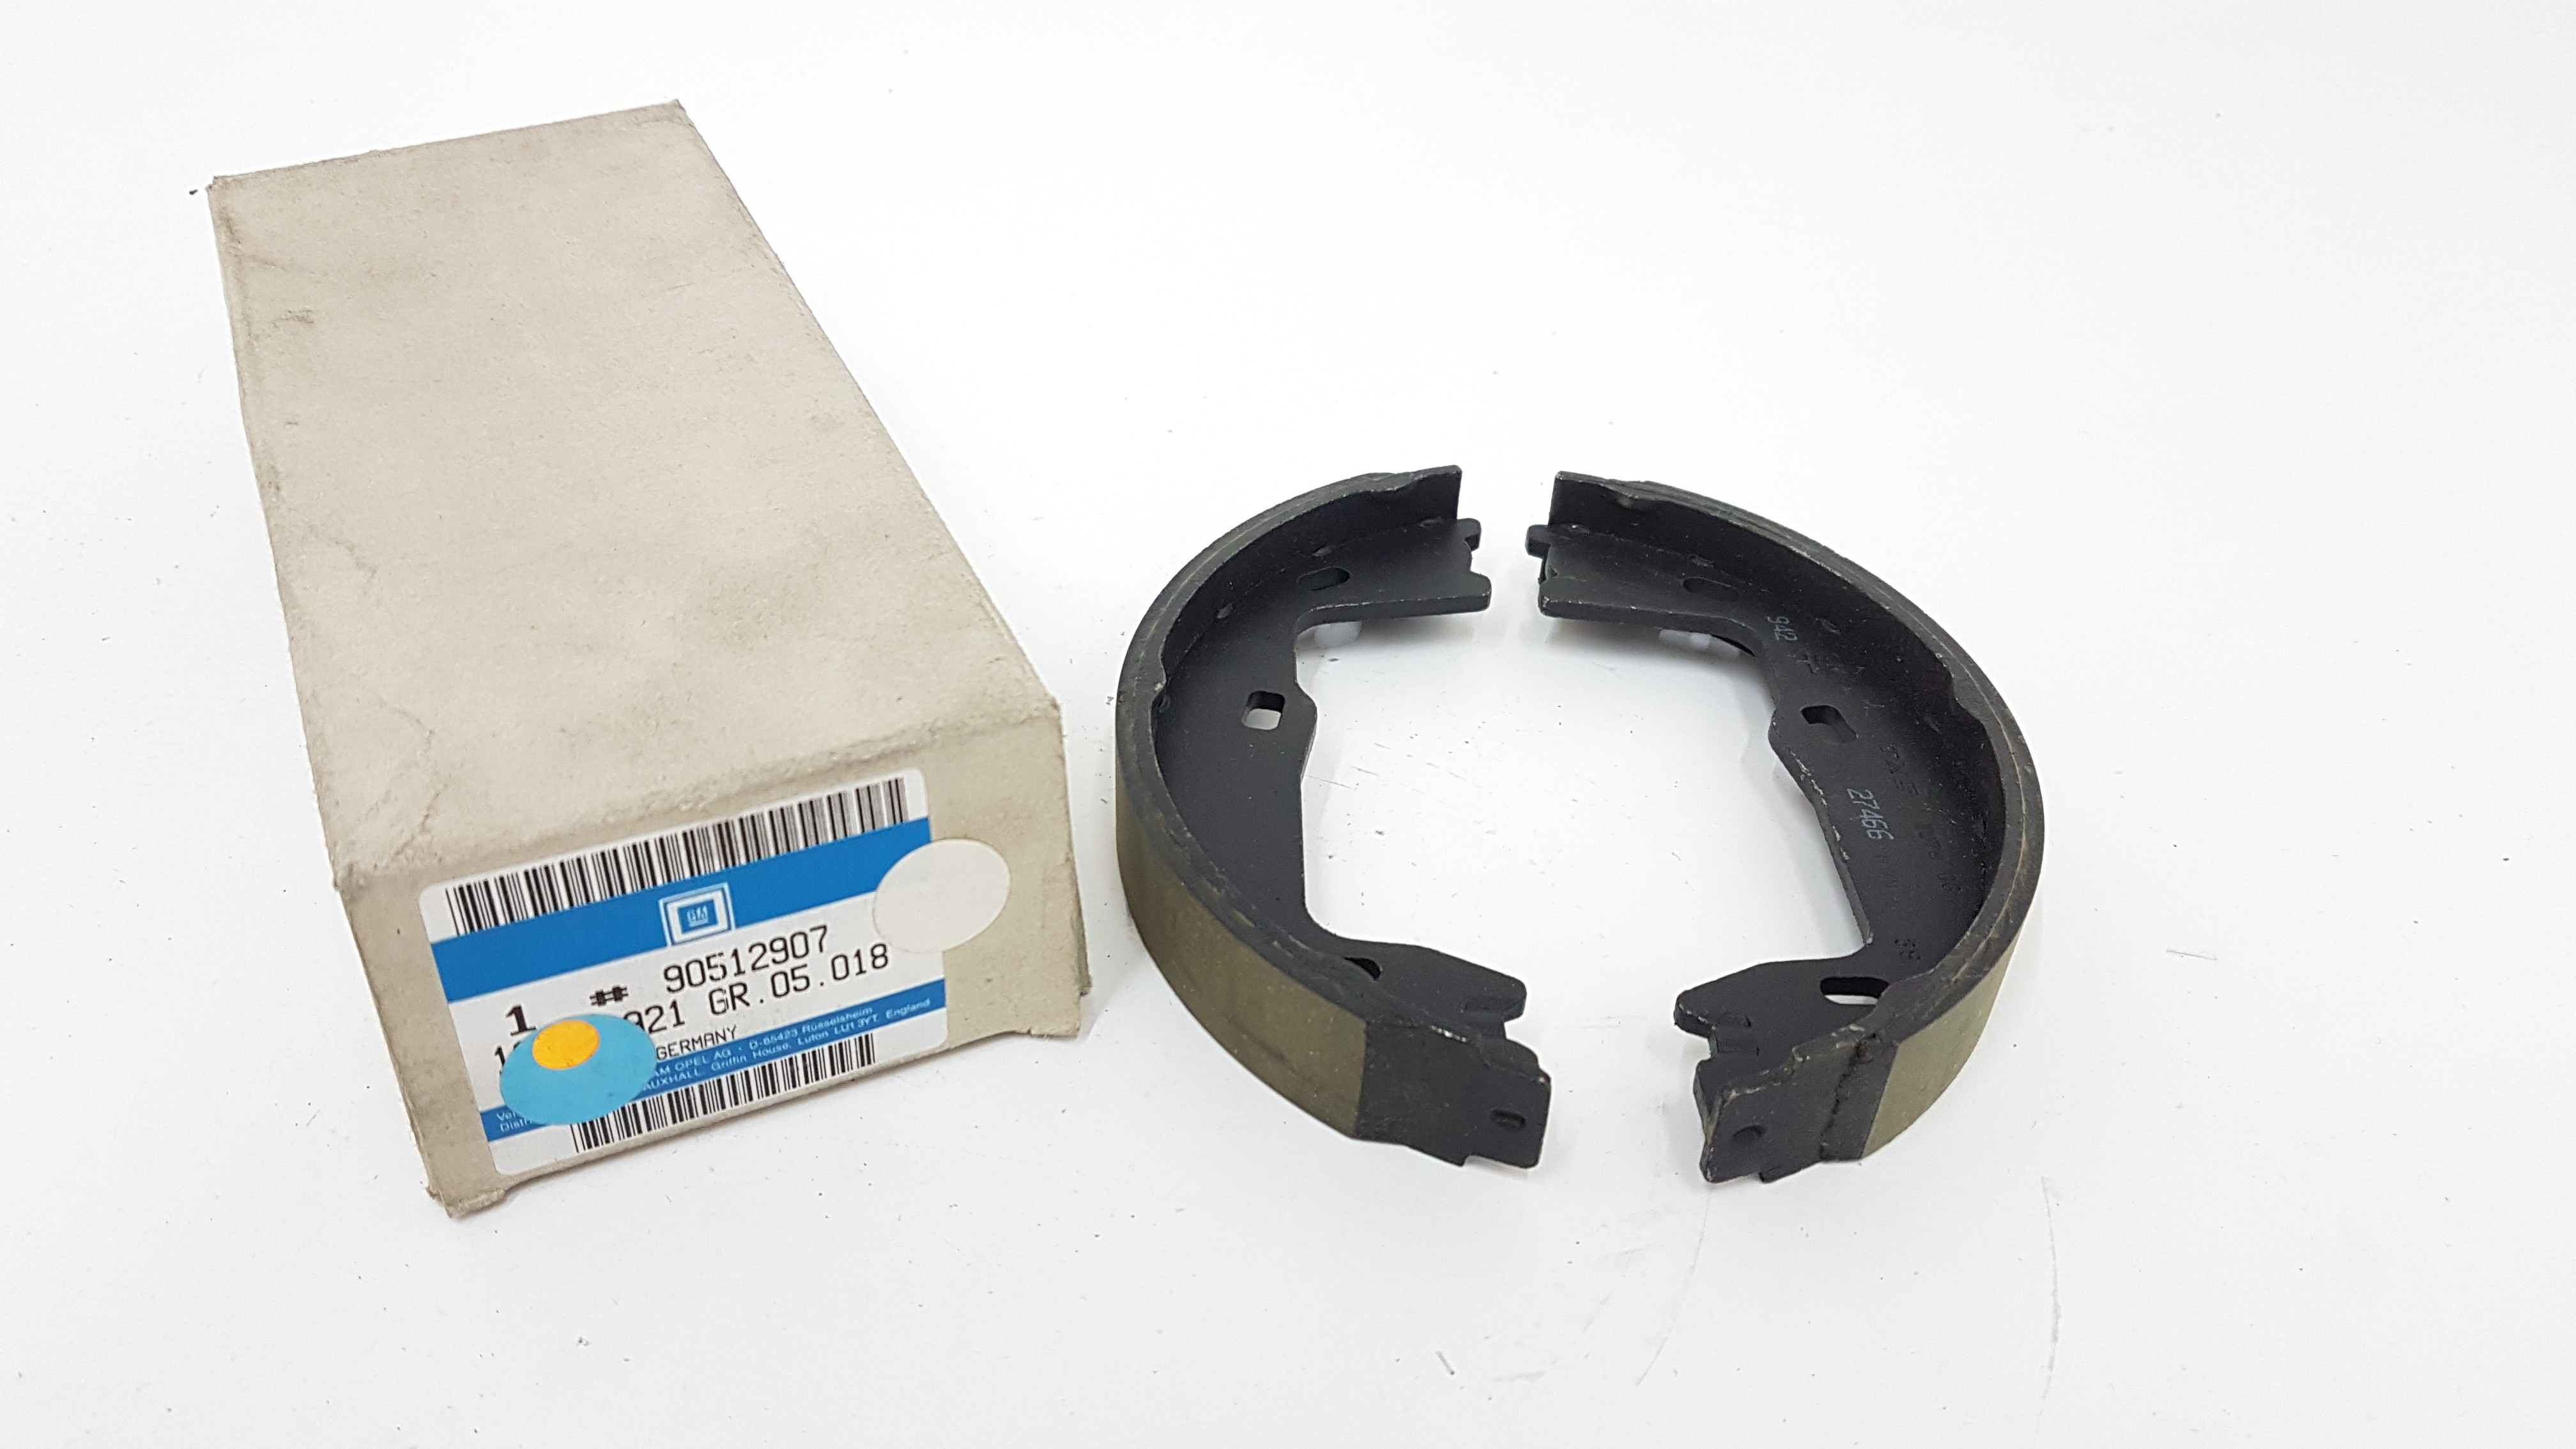 Vauxhall Astra Vectra Rear Axle Brake Shoes Pads NEW Drum Brakes Petrol Diesel